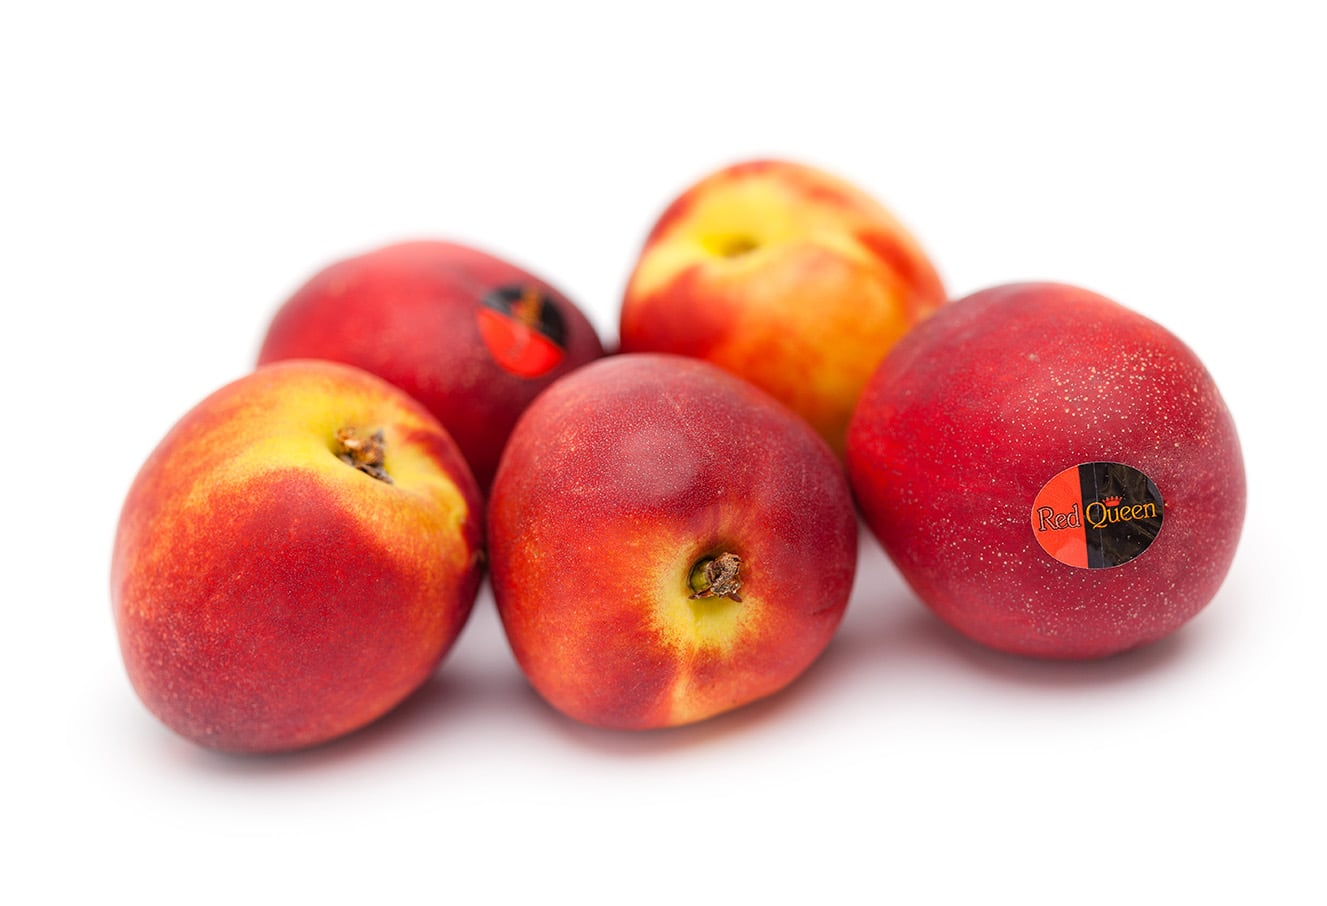 Week 21 - Nectarines